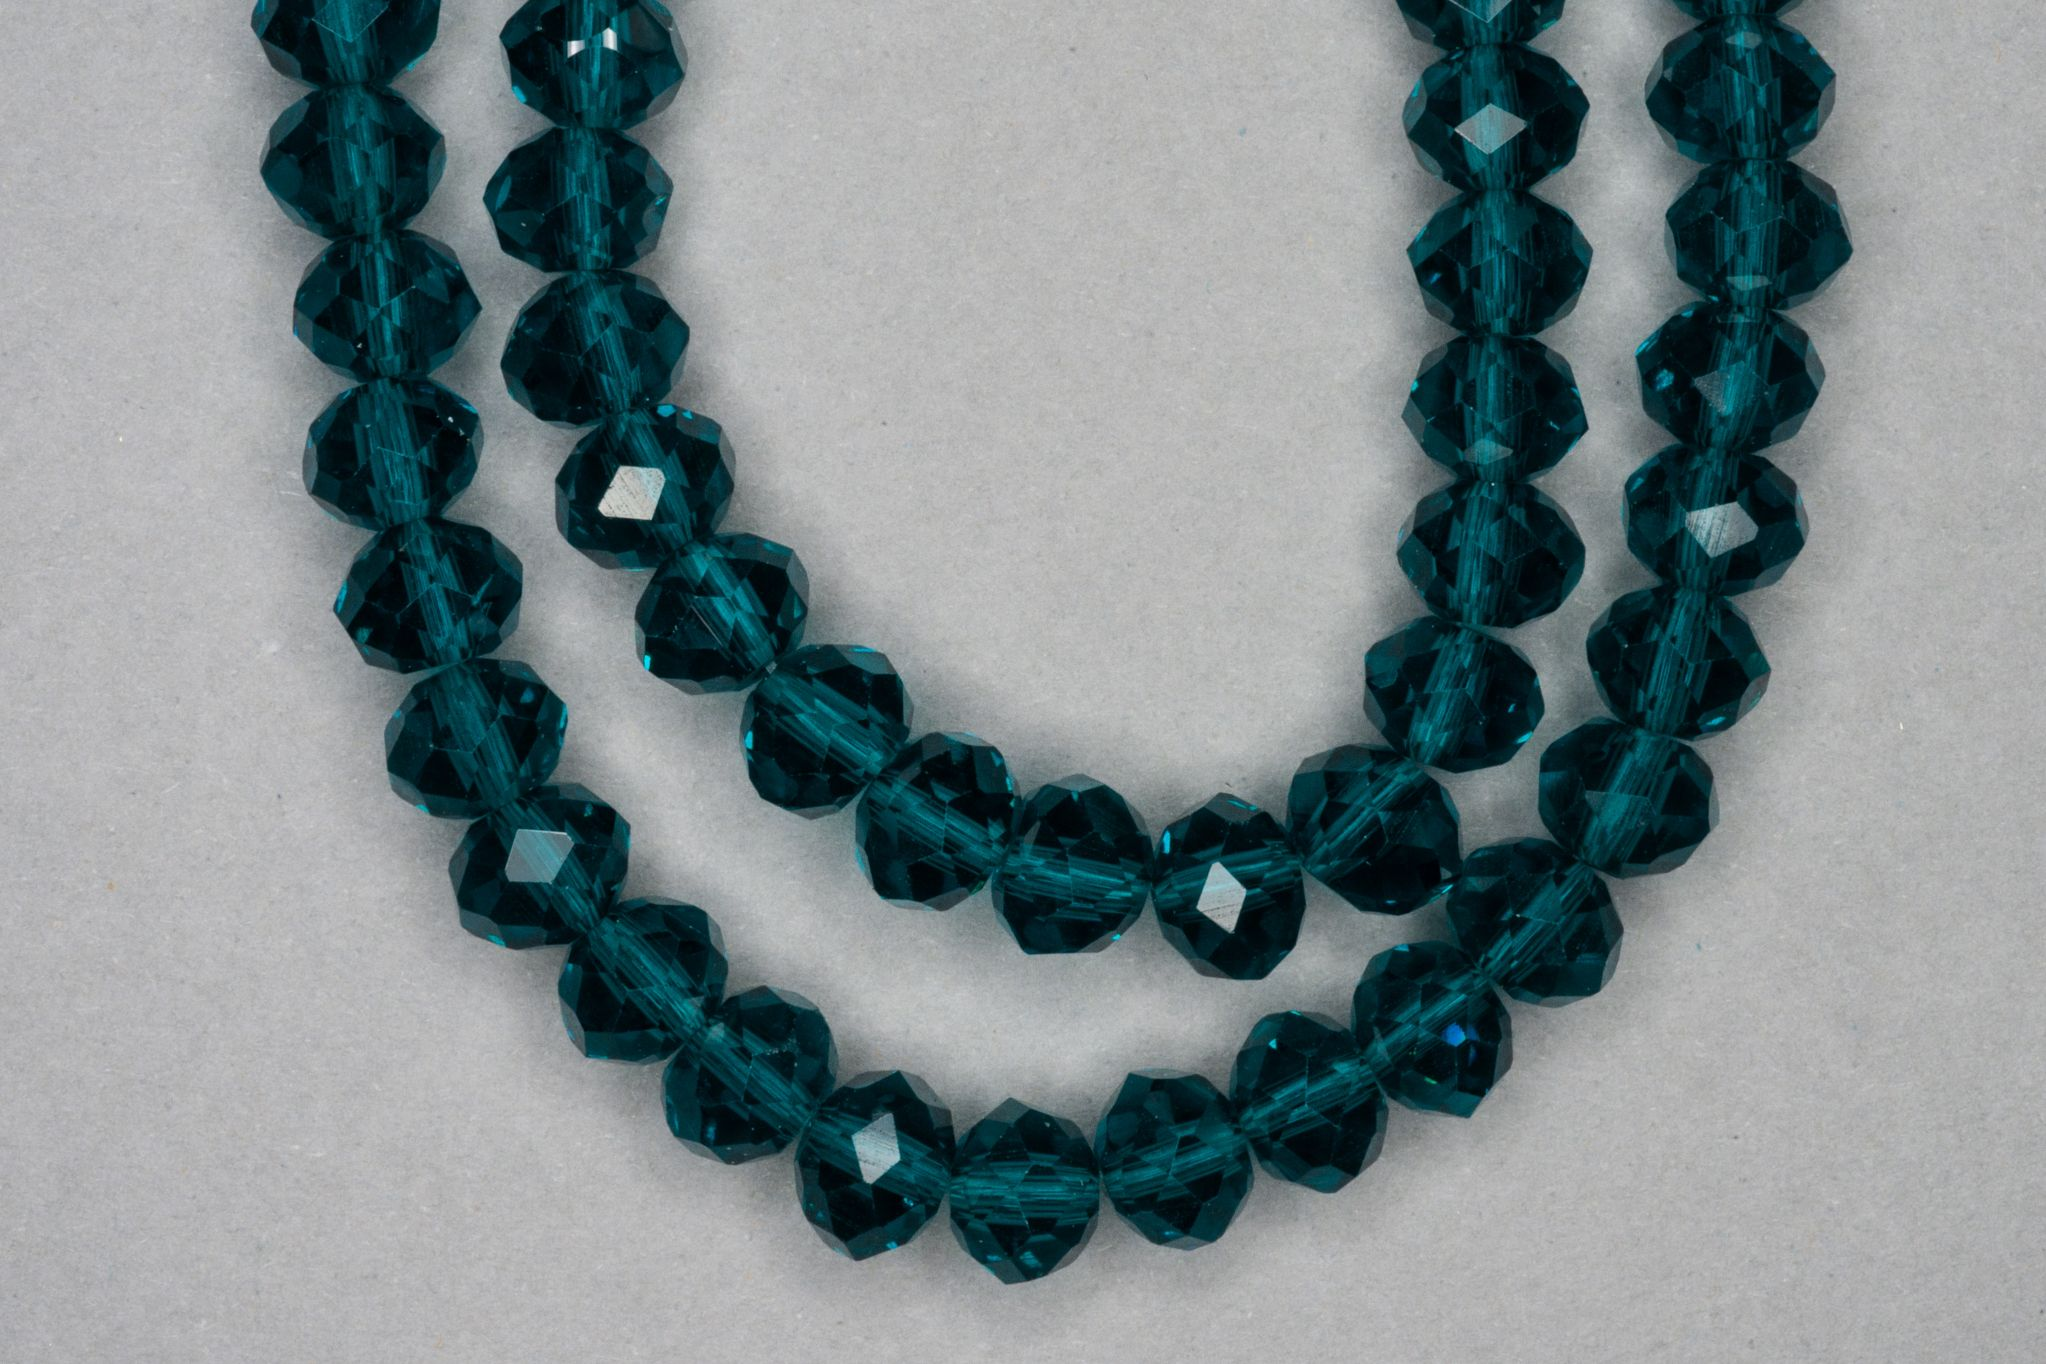 Teal Faceted Glass Beads